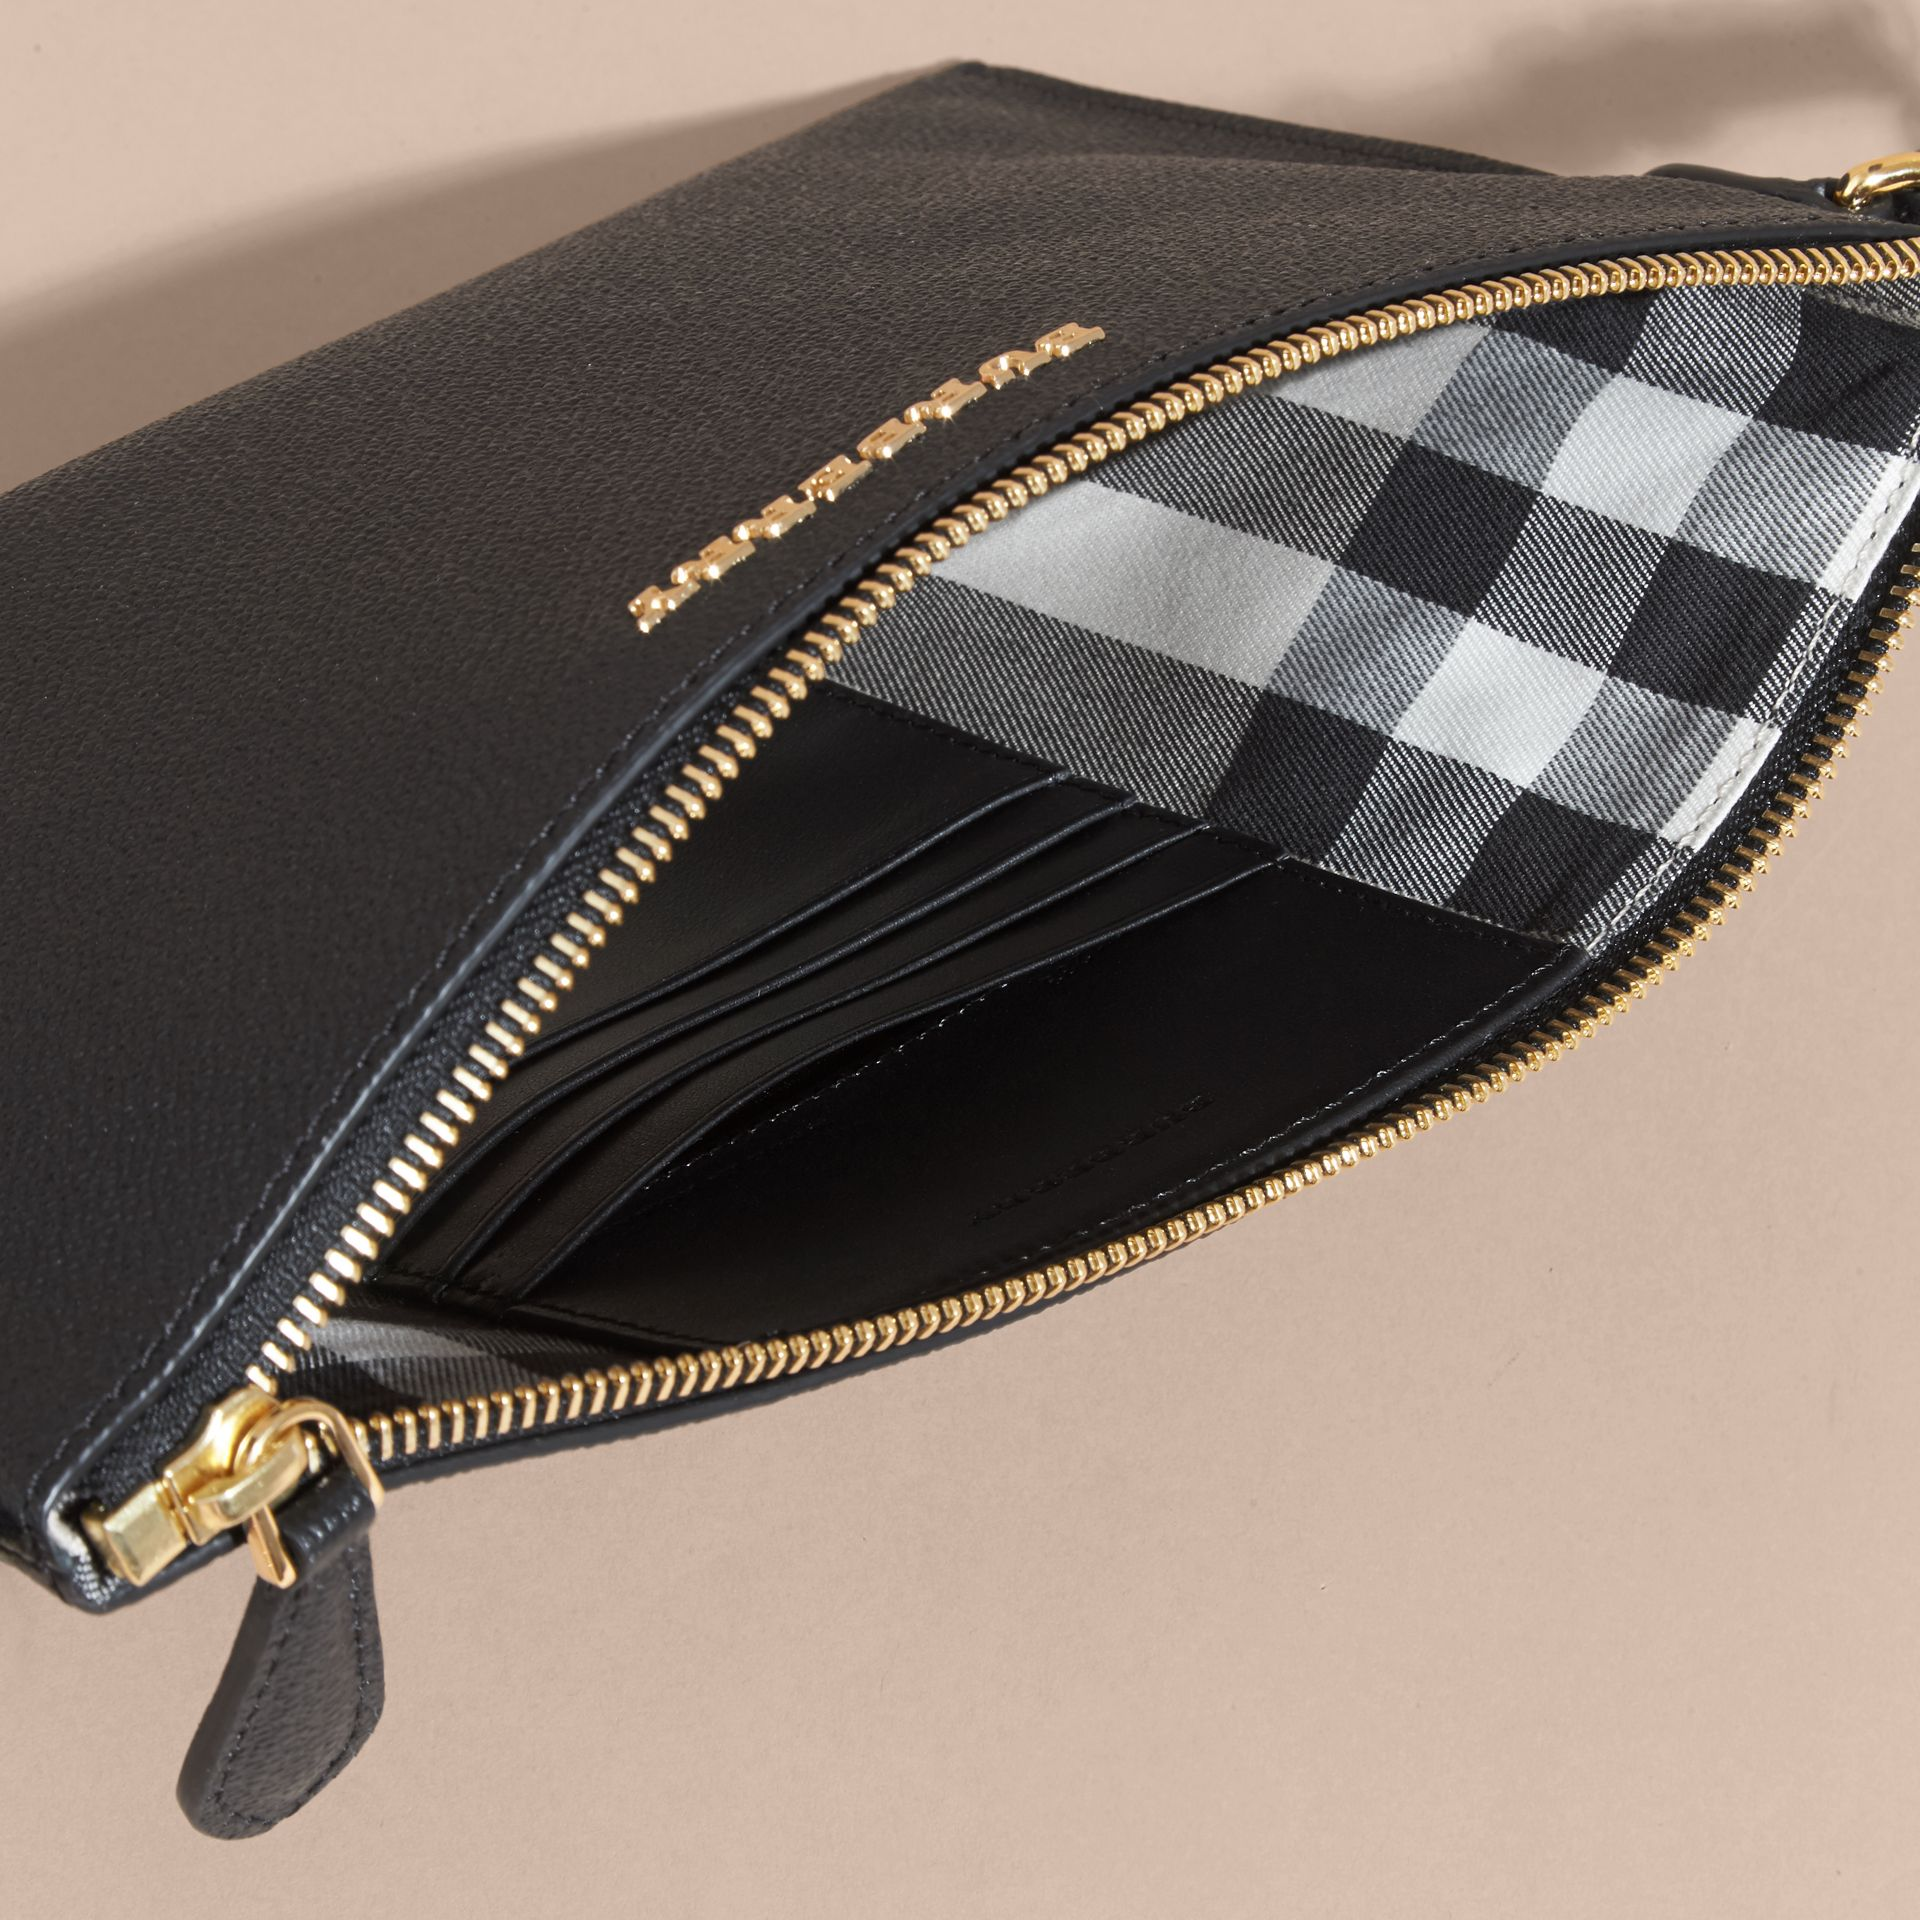 Leather Clutch Bag with Check Lining in Black - Women | Burberry Singapore - gallery image 6